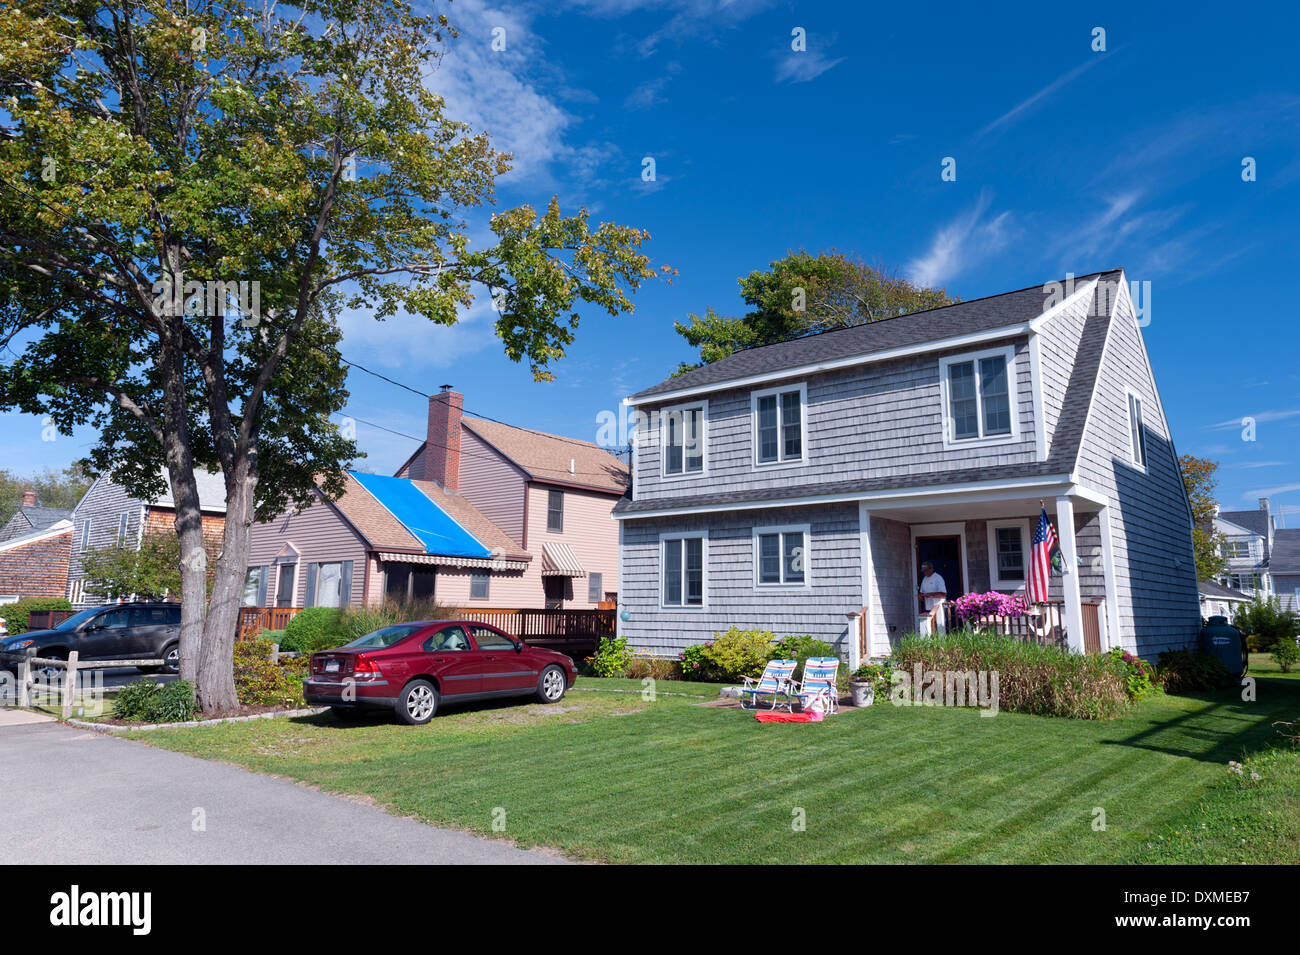 Neat Two- Story Shingle Tiled House In Moody Beach, Maine